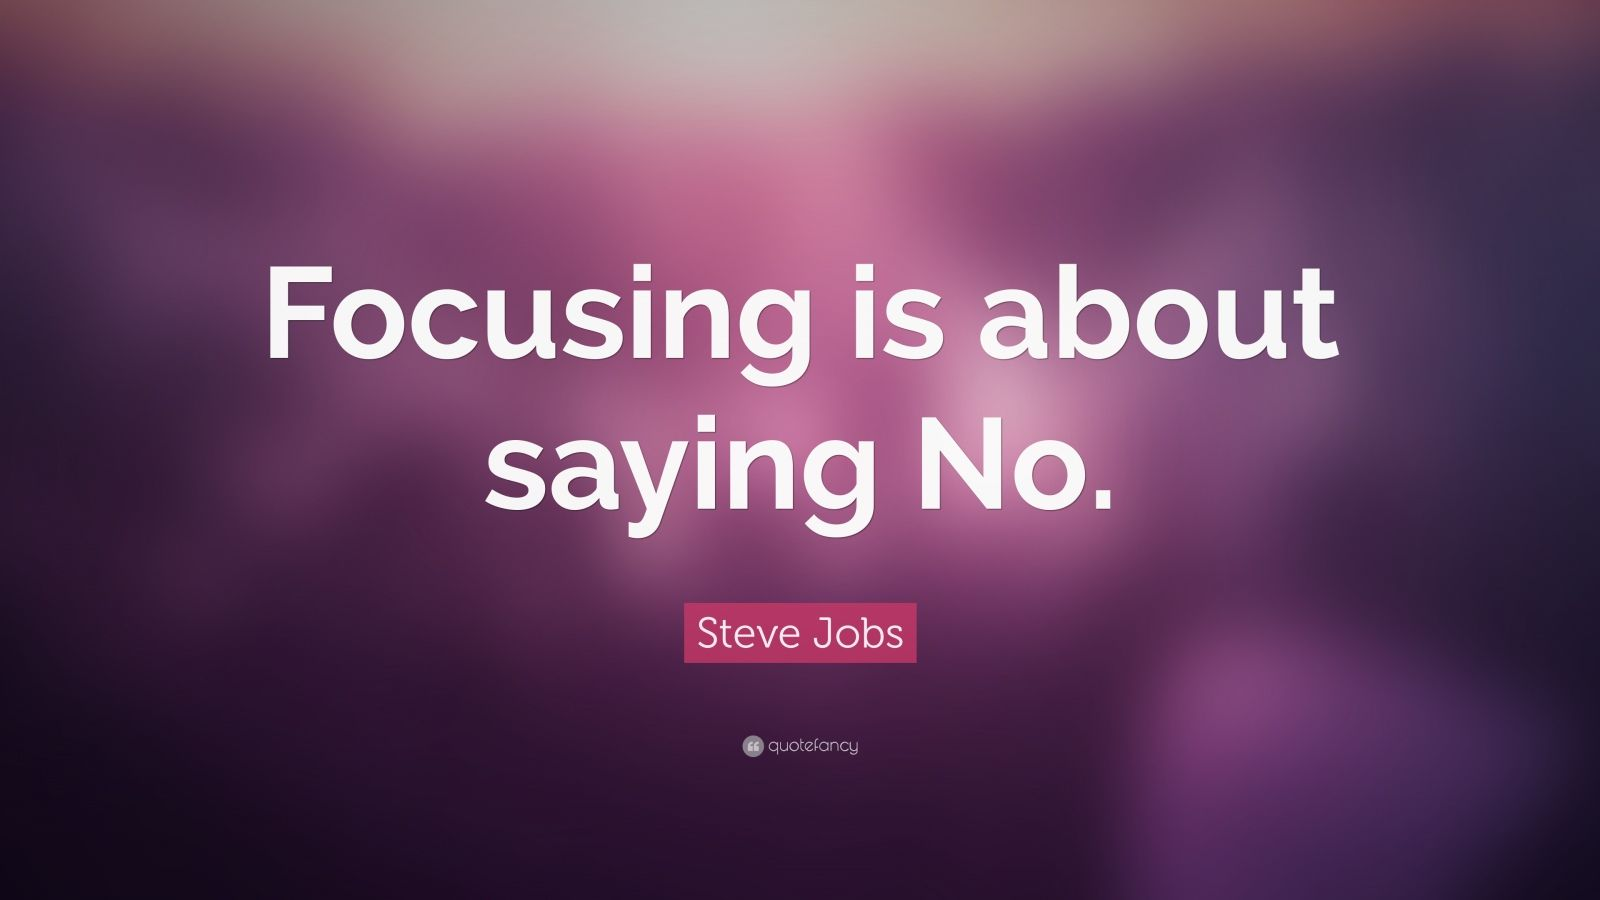 Steve Jobs Quote Focusing is about saying No 20